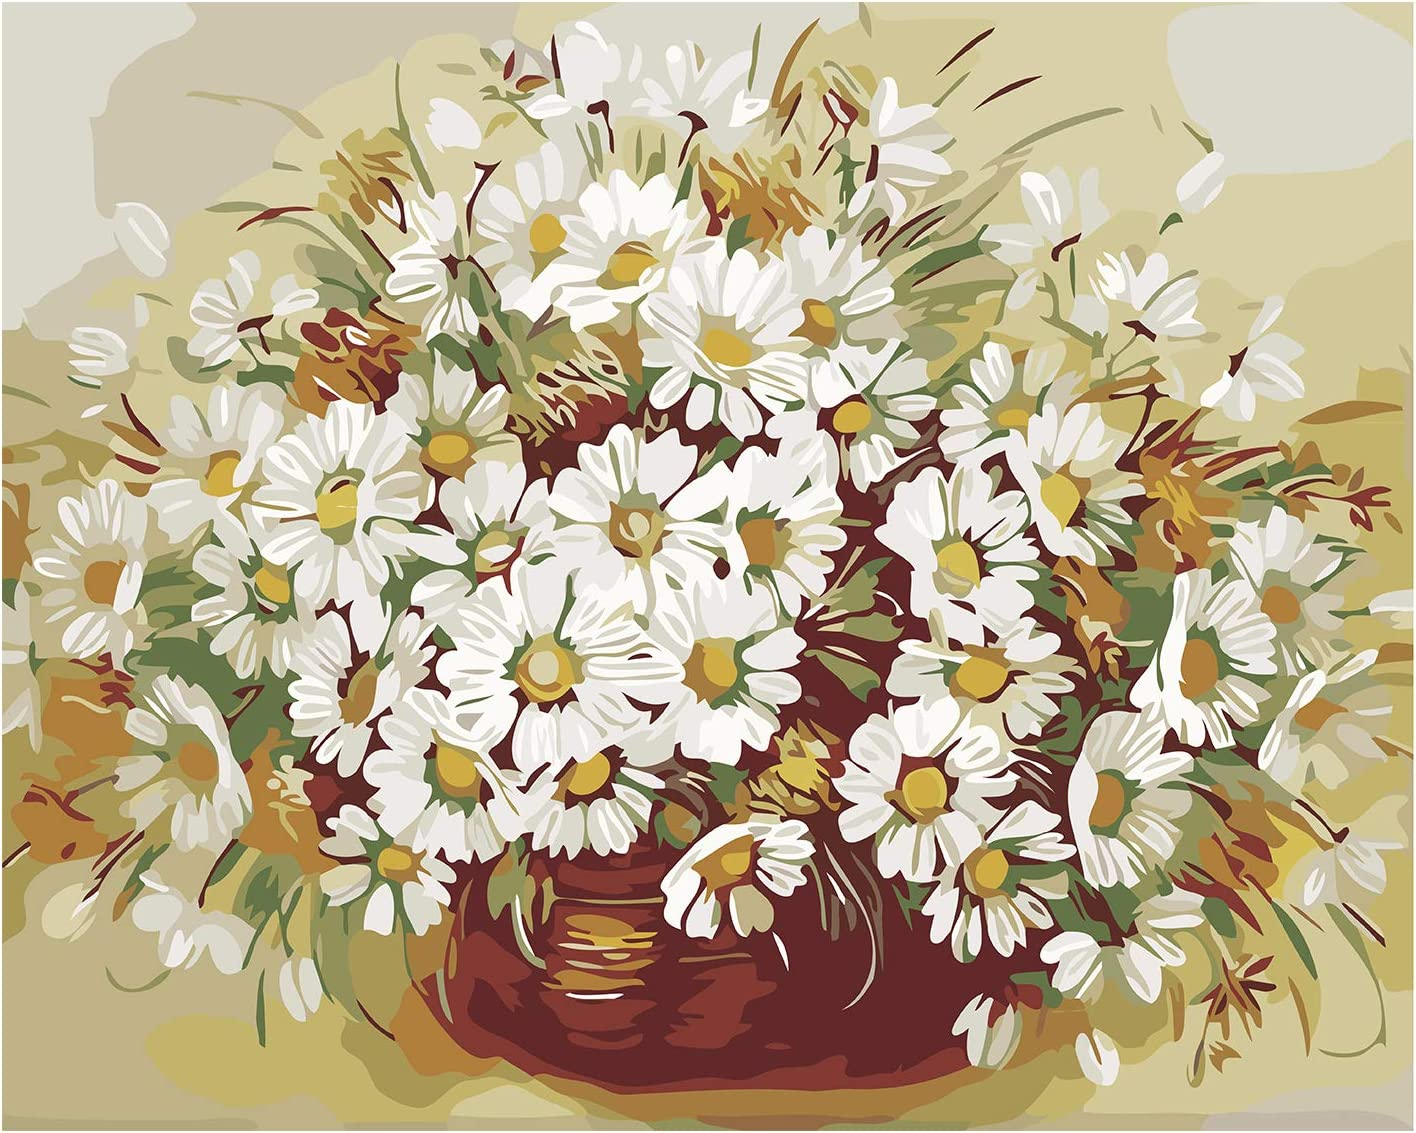 DIY Paint by Numbers for Adults – Beautiful Flowers Paint by Number Kit for Home Wall Decoration, Wrinkle-Free Canvas, 16x20 inch (Chrysanthemum)